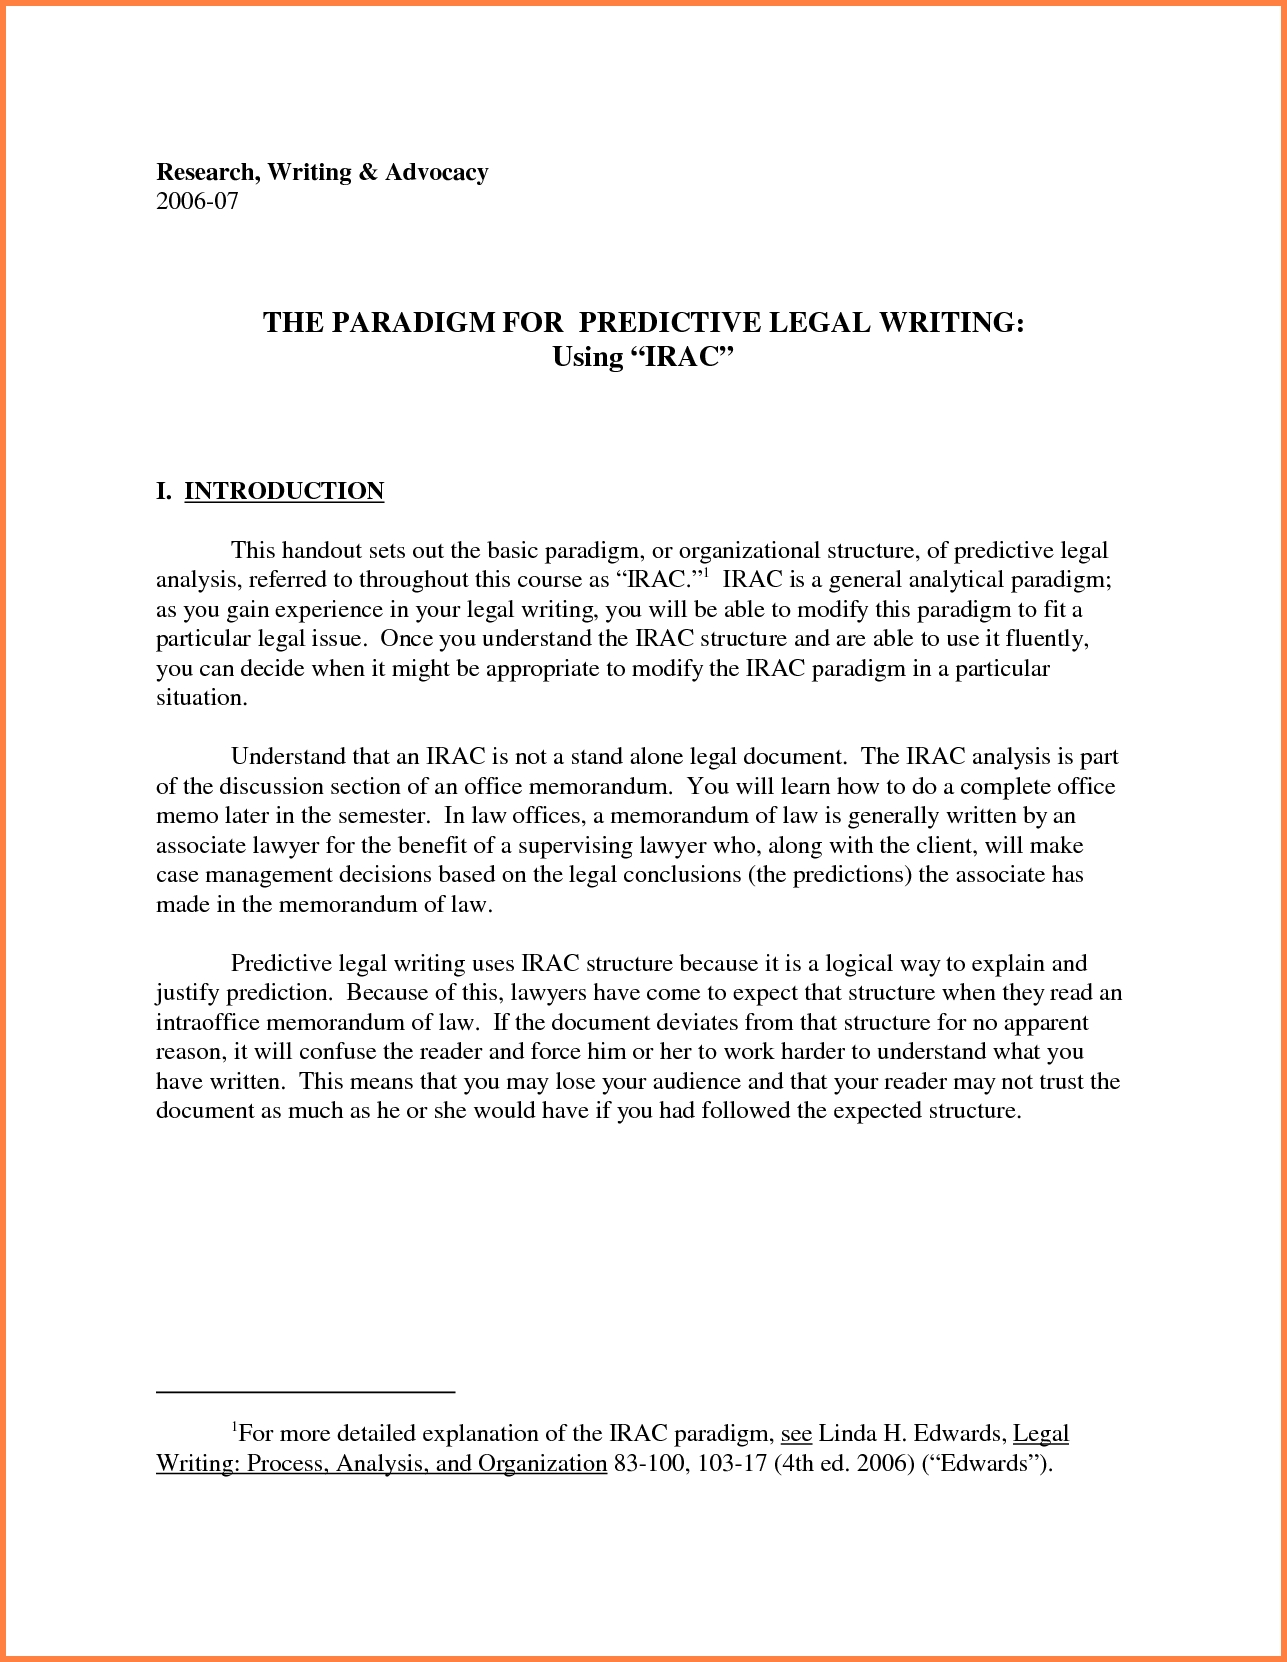 Legal Memo Examples.23417862 - Sales Report Template pertaining to Legal Memo Format Irac 22925